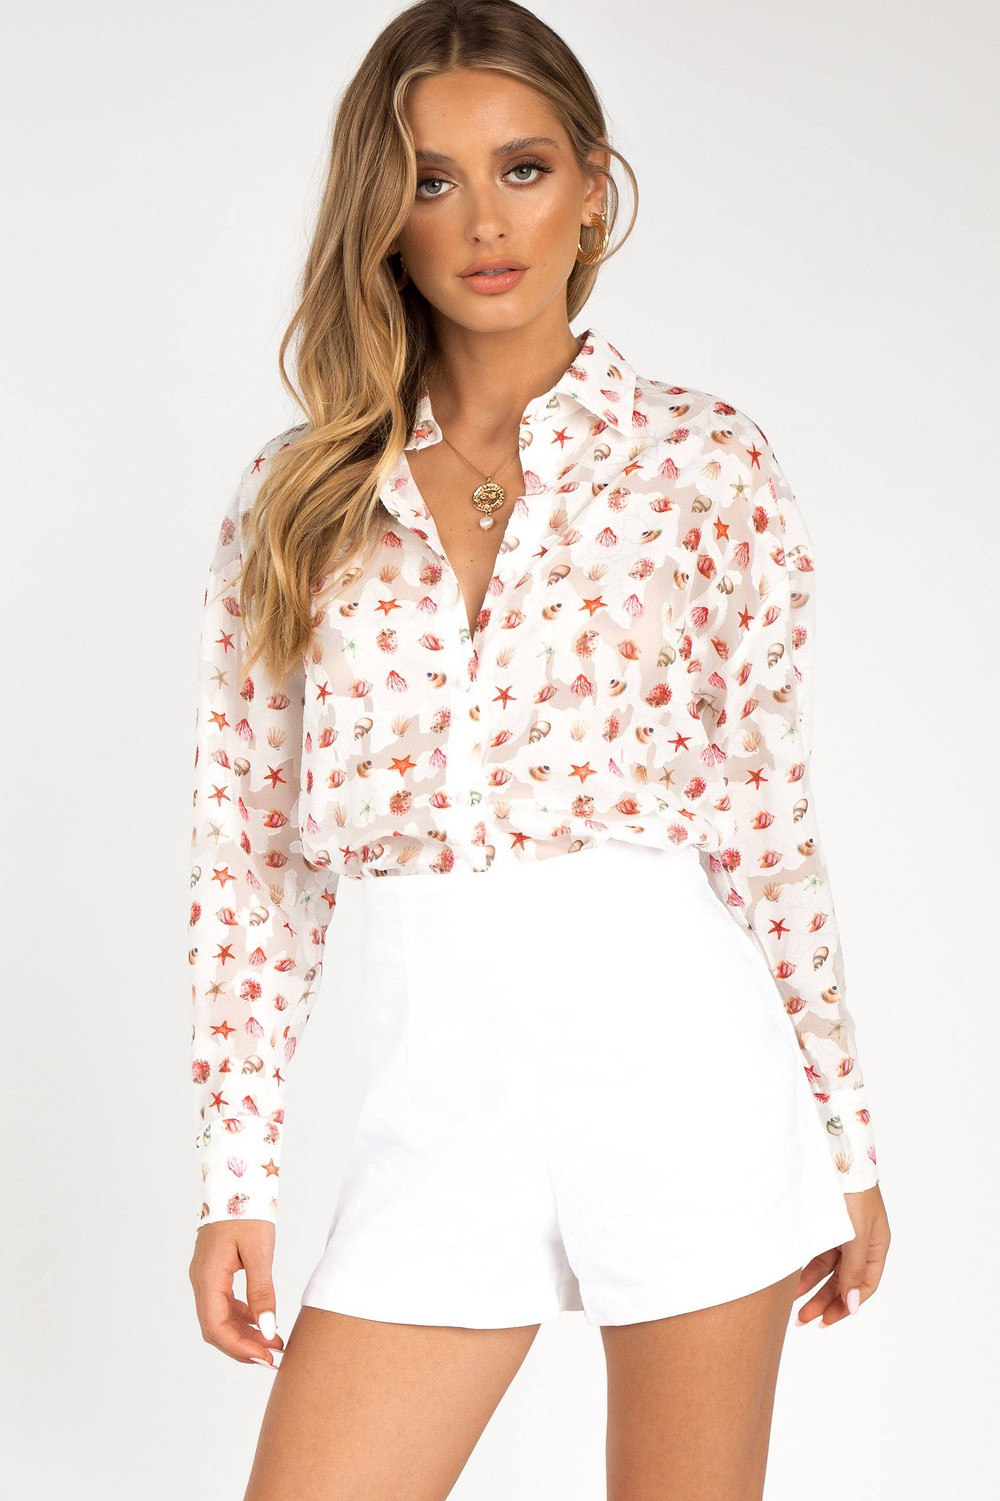 DRIFTWOOD WHITE SHELL SHIRT DISSH EXCLUSIVE  $59.99